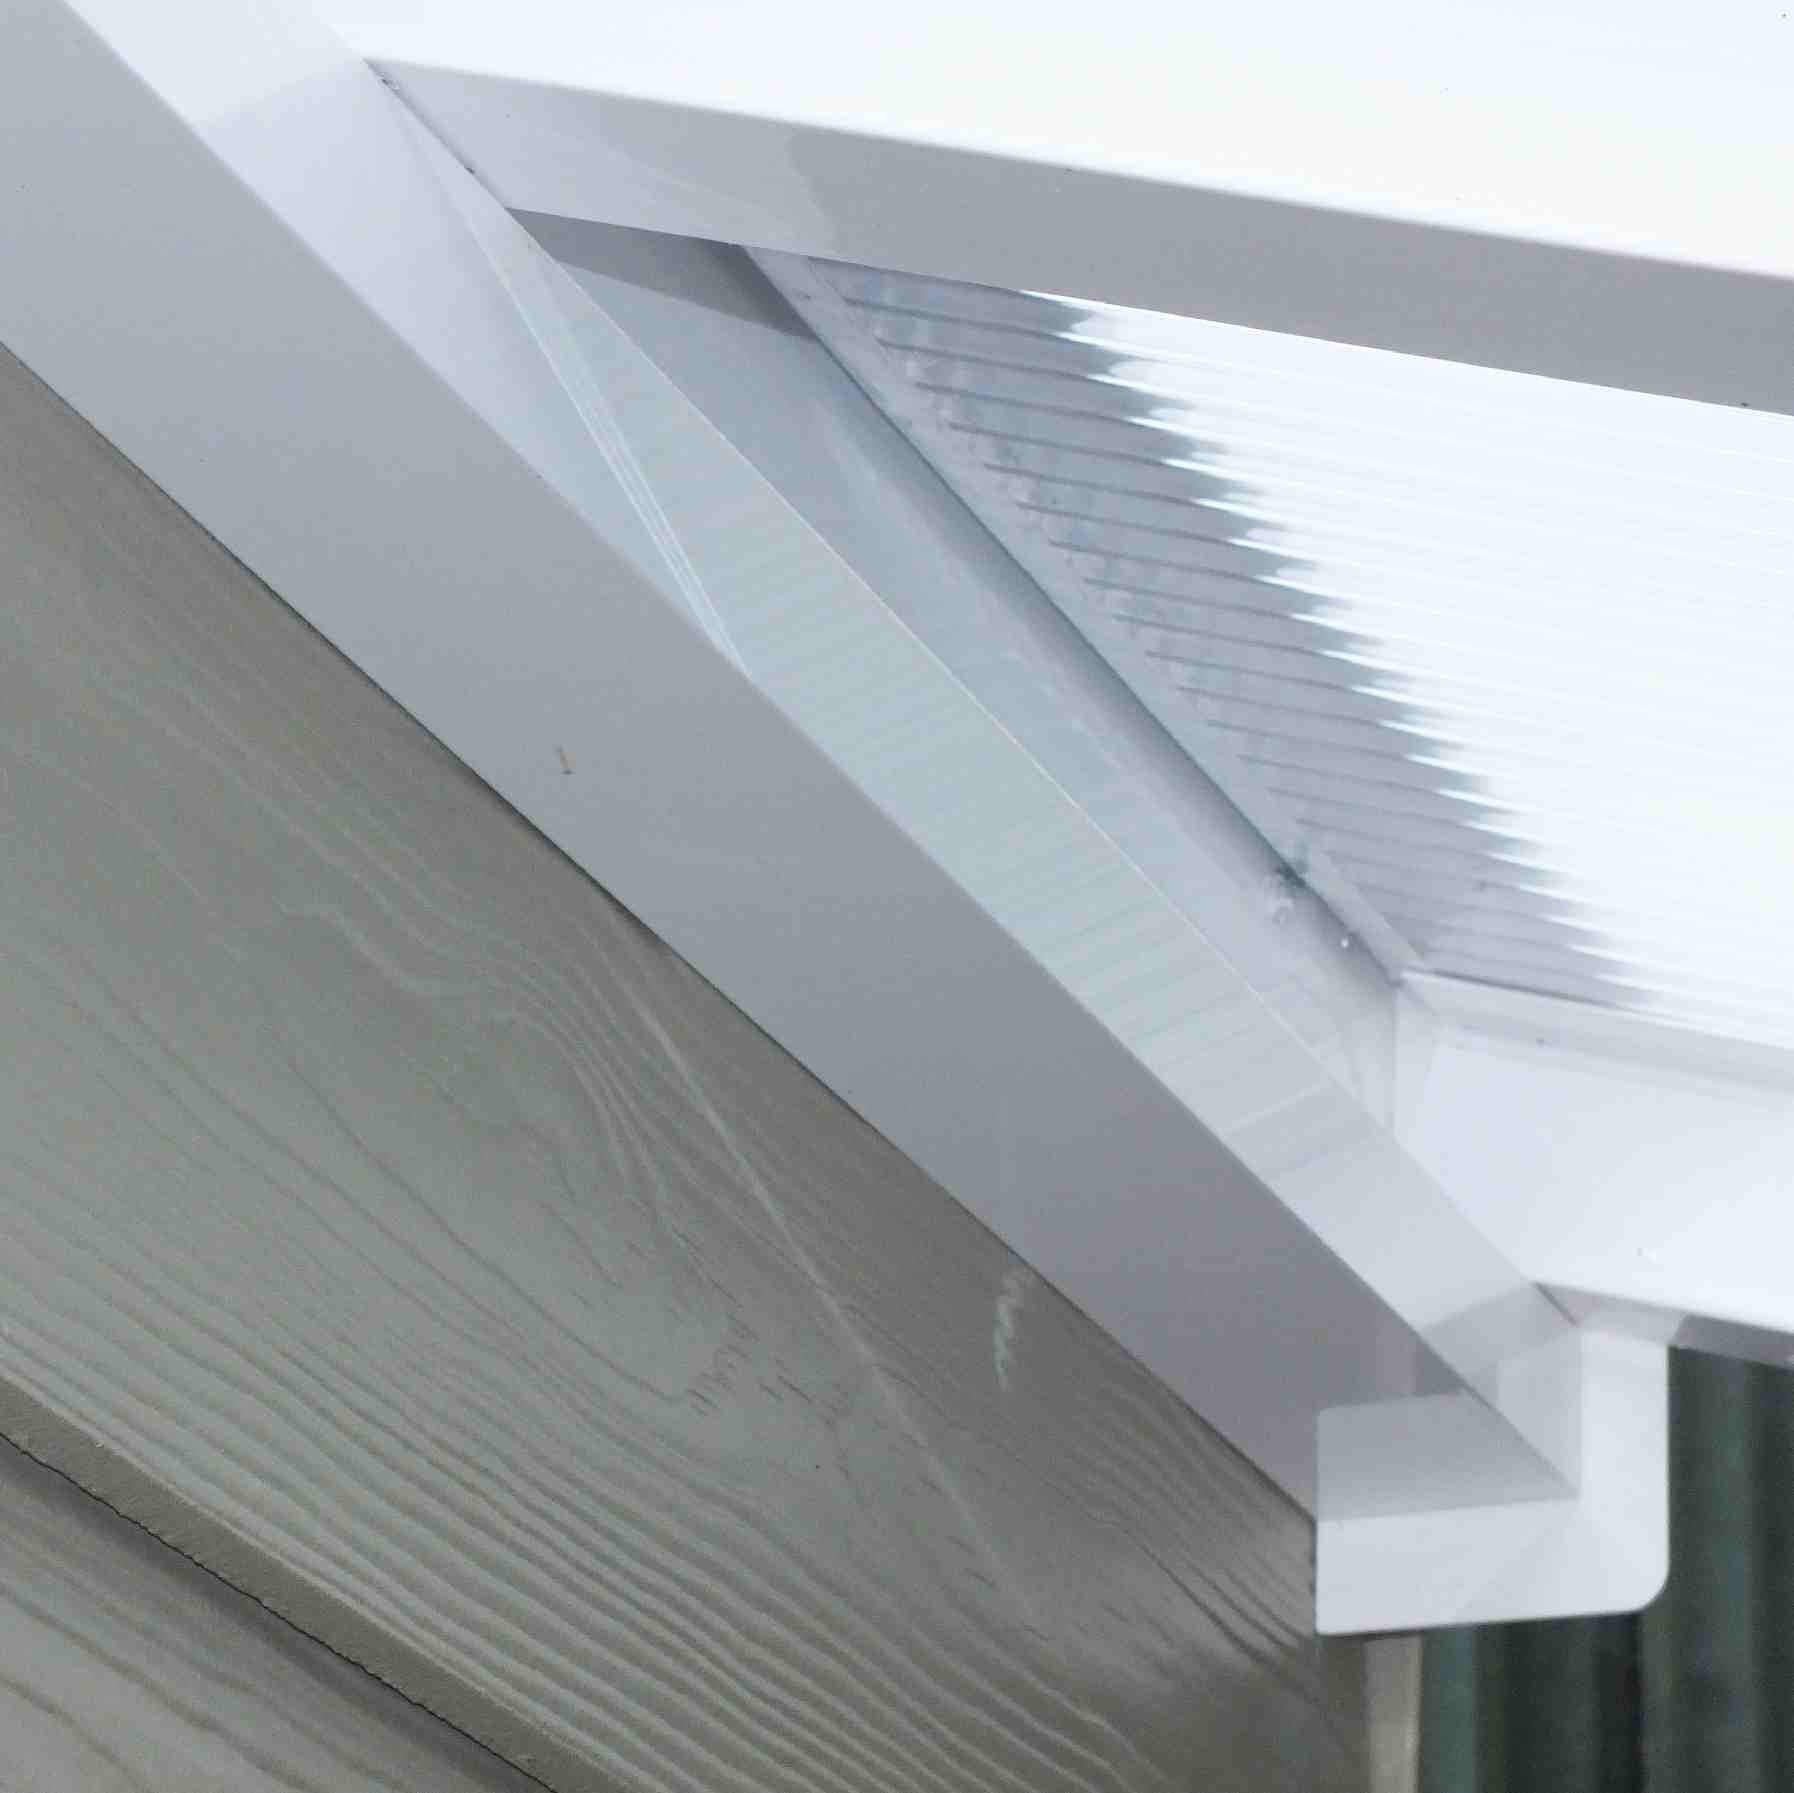 Great deals on Omega Verandah with 6mm Glass Clear Plate Polycarbonate Glazing - 2.1m (W) x 2.0m (P), (2) Supporting Posts